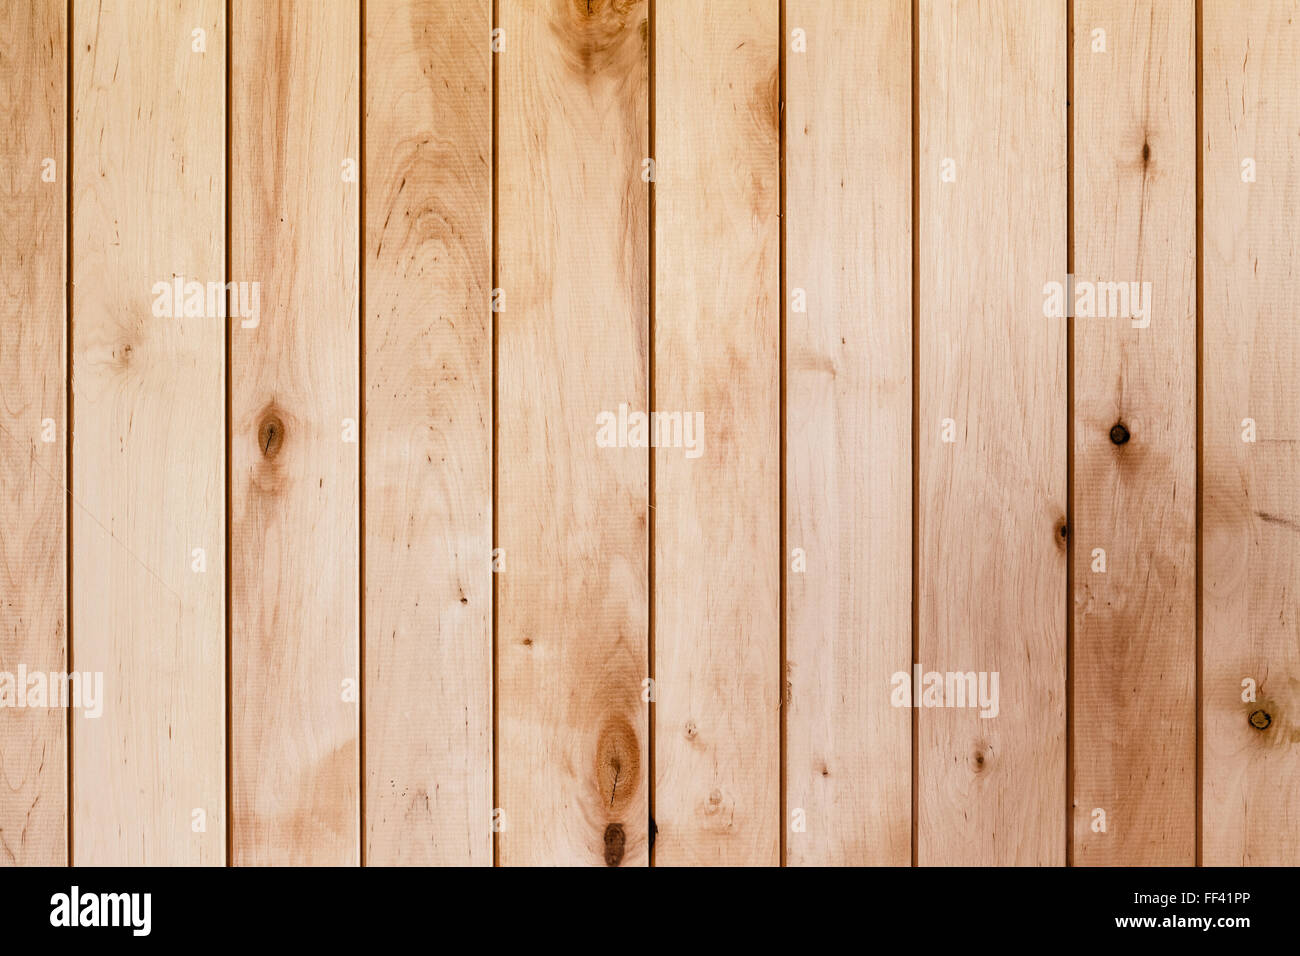 The Light Brown Wooden Texture With Natural Patterns - Stock Image